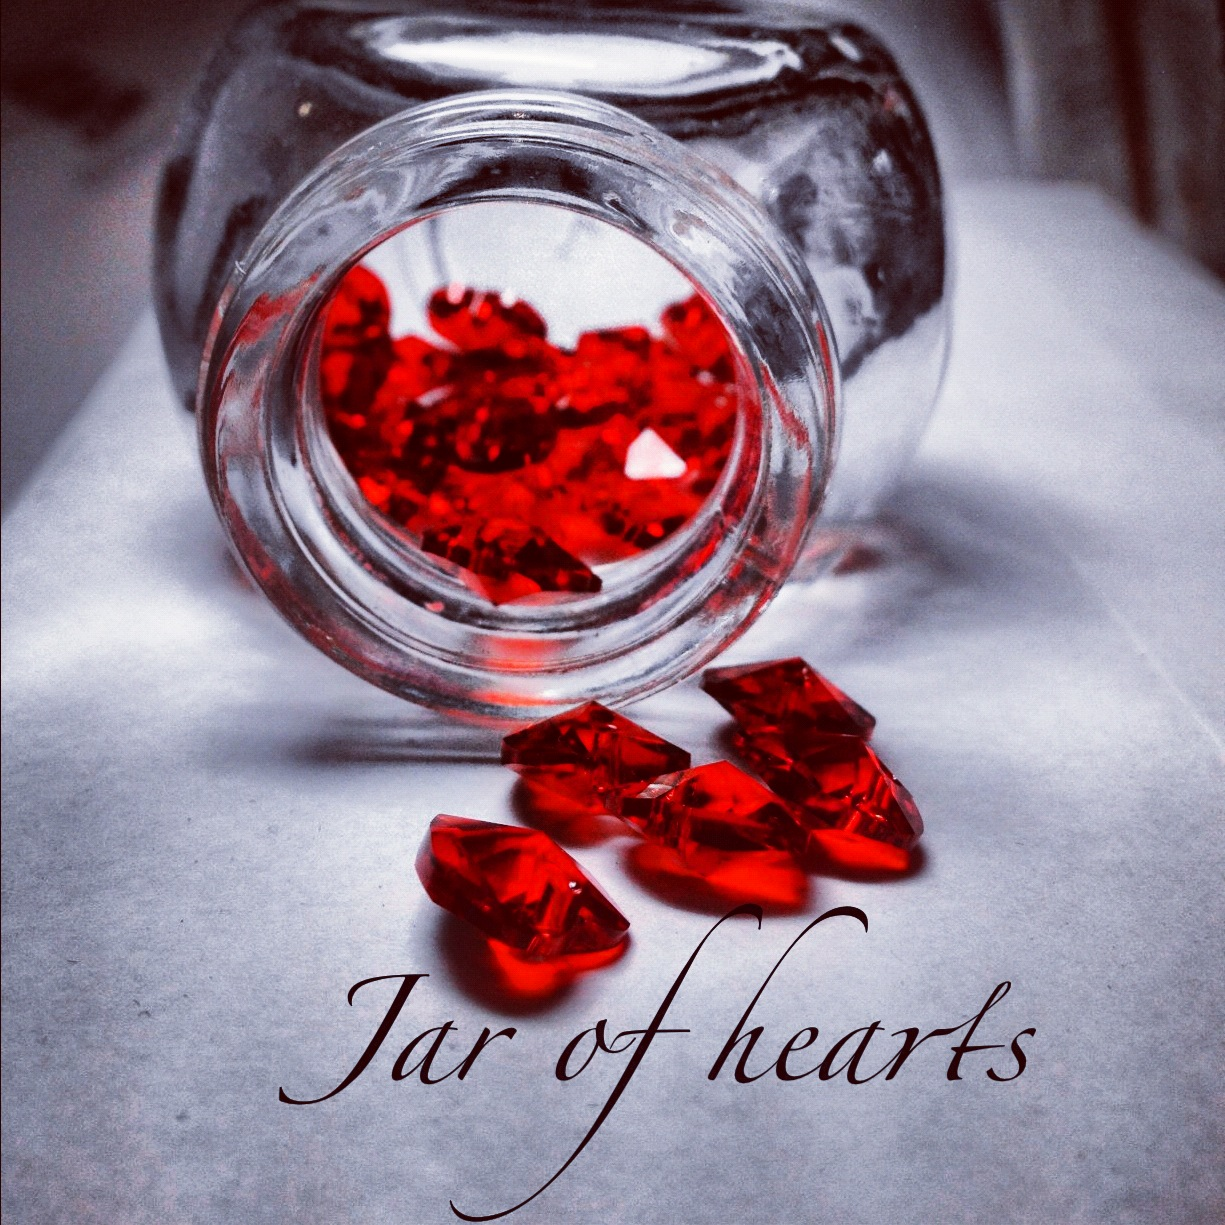 SimaG Personalized Jewelry ♥: jar of hearts